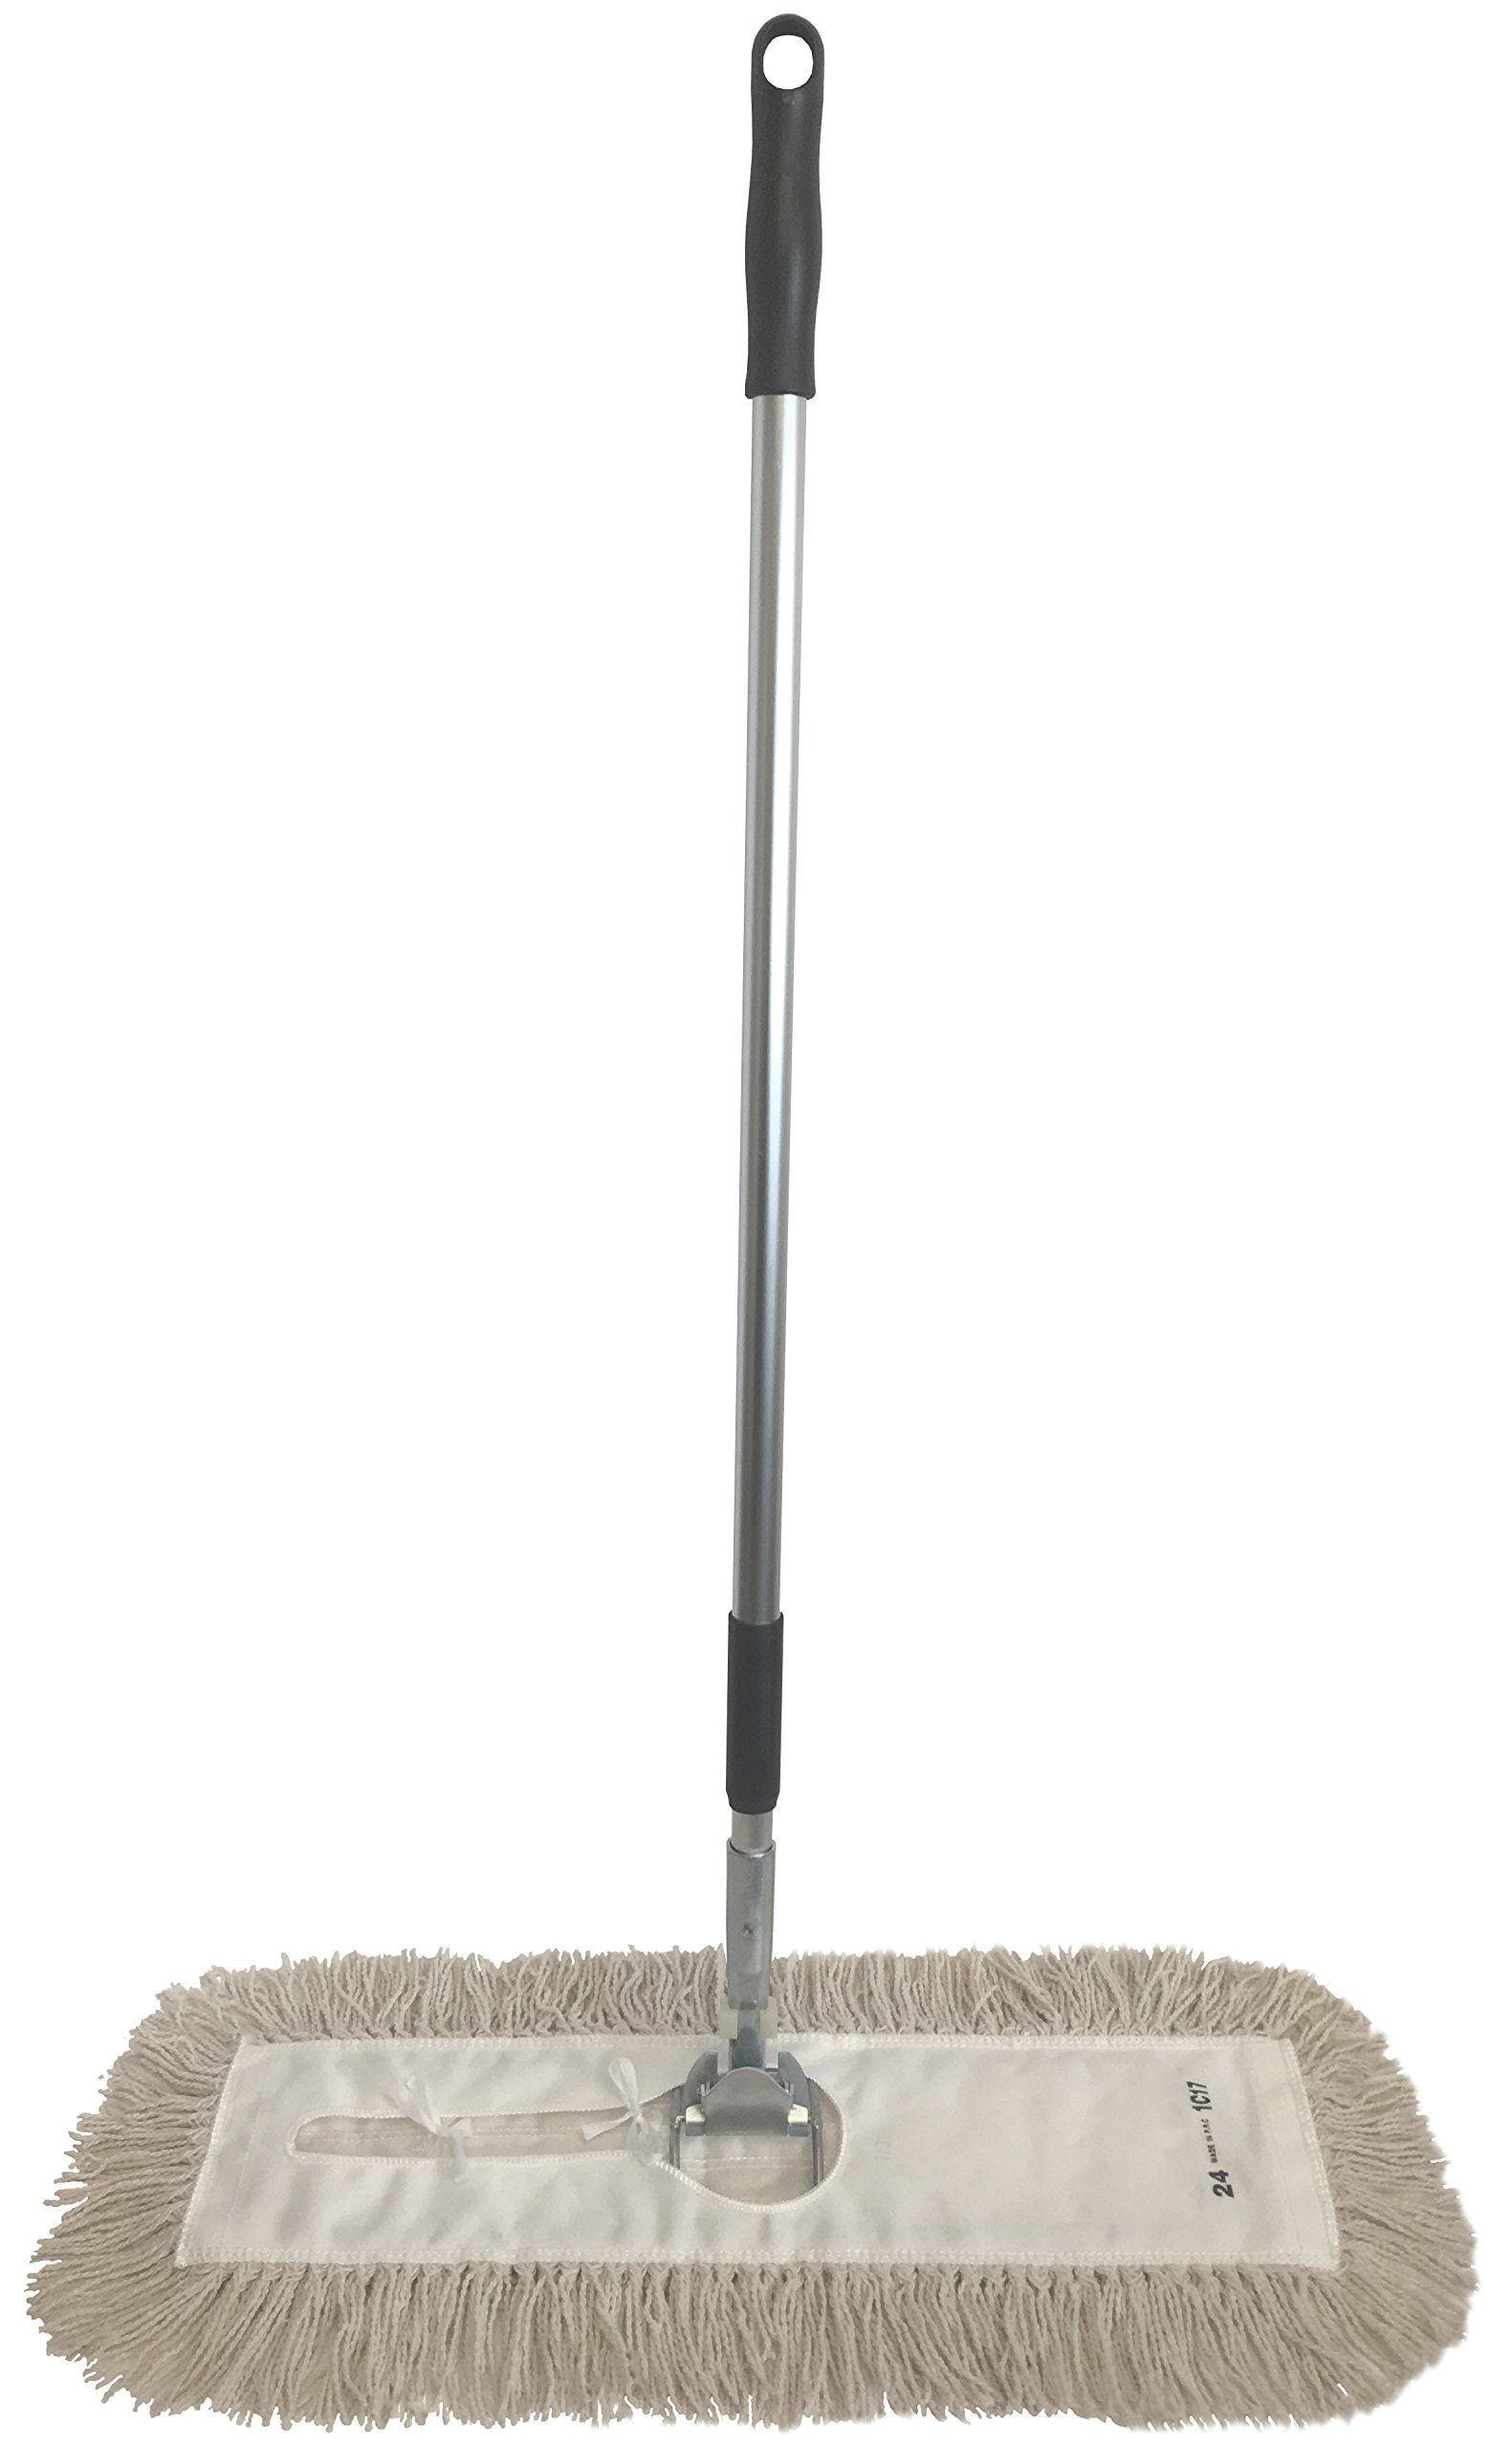 Dust Mop Kit 36'' : (1) 36'' White Industrial Closed-Loop Dust Mop, (1) 36'' Wire Dust Mop Frame & (1) Dust Mop Handle Clip-On Style by Direct Mop Sales, Inc.